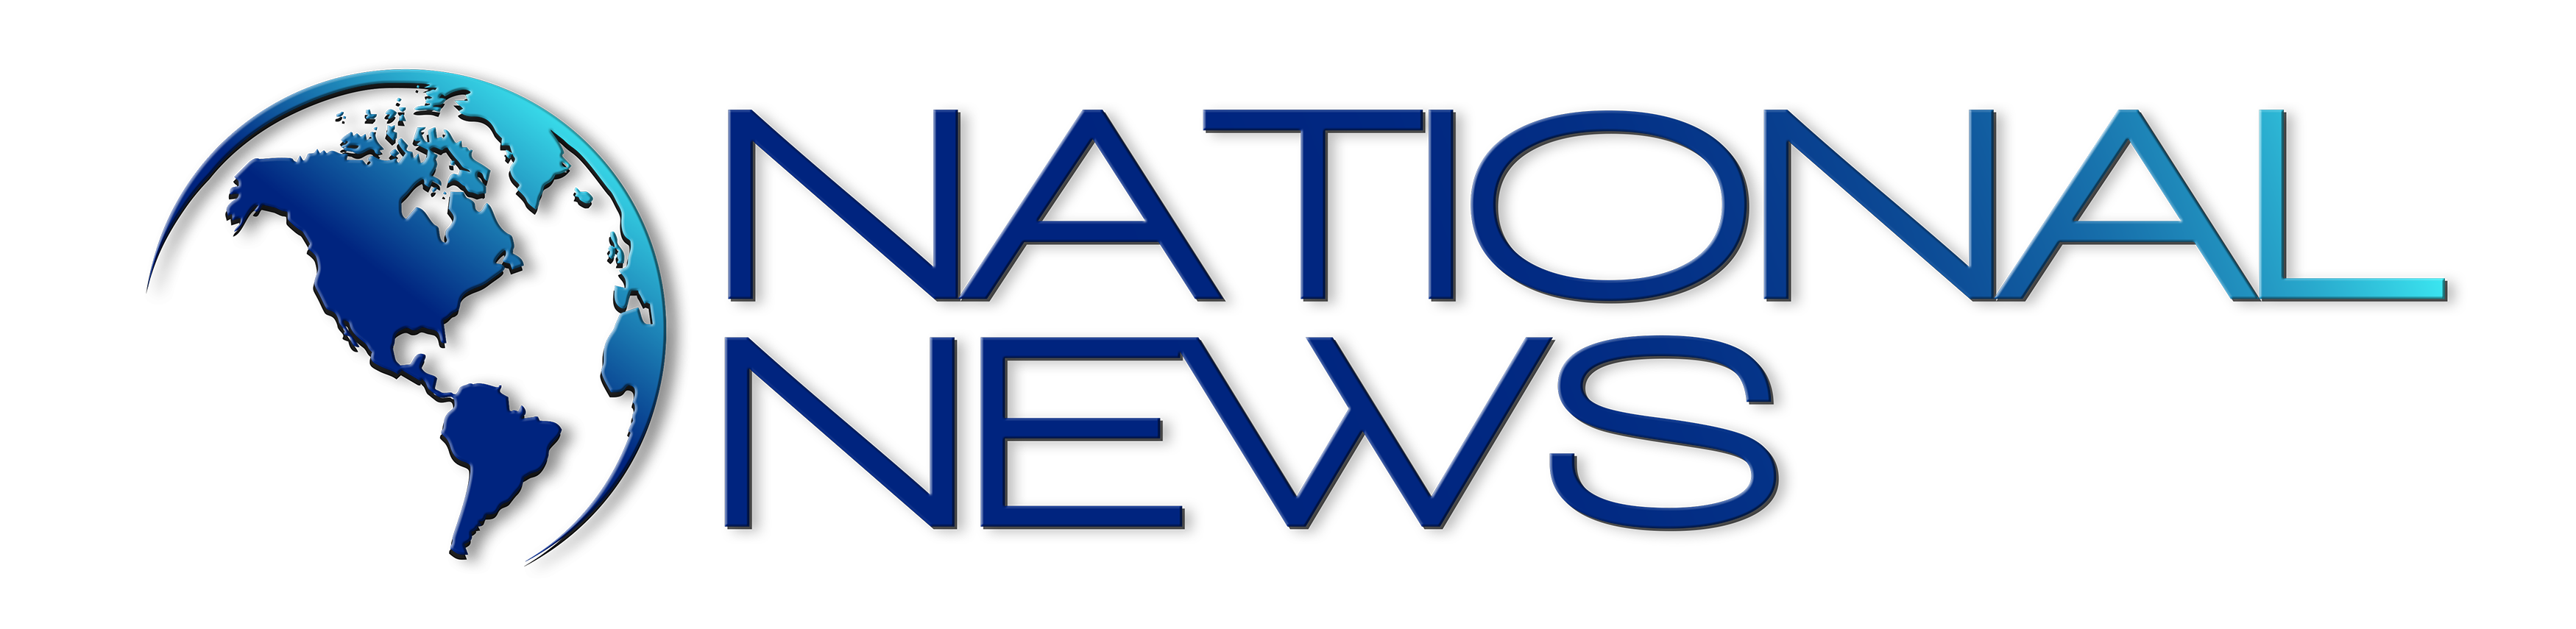 Advocacy . Png national news today picture transparent download